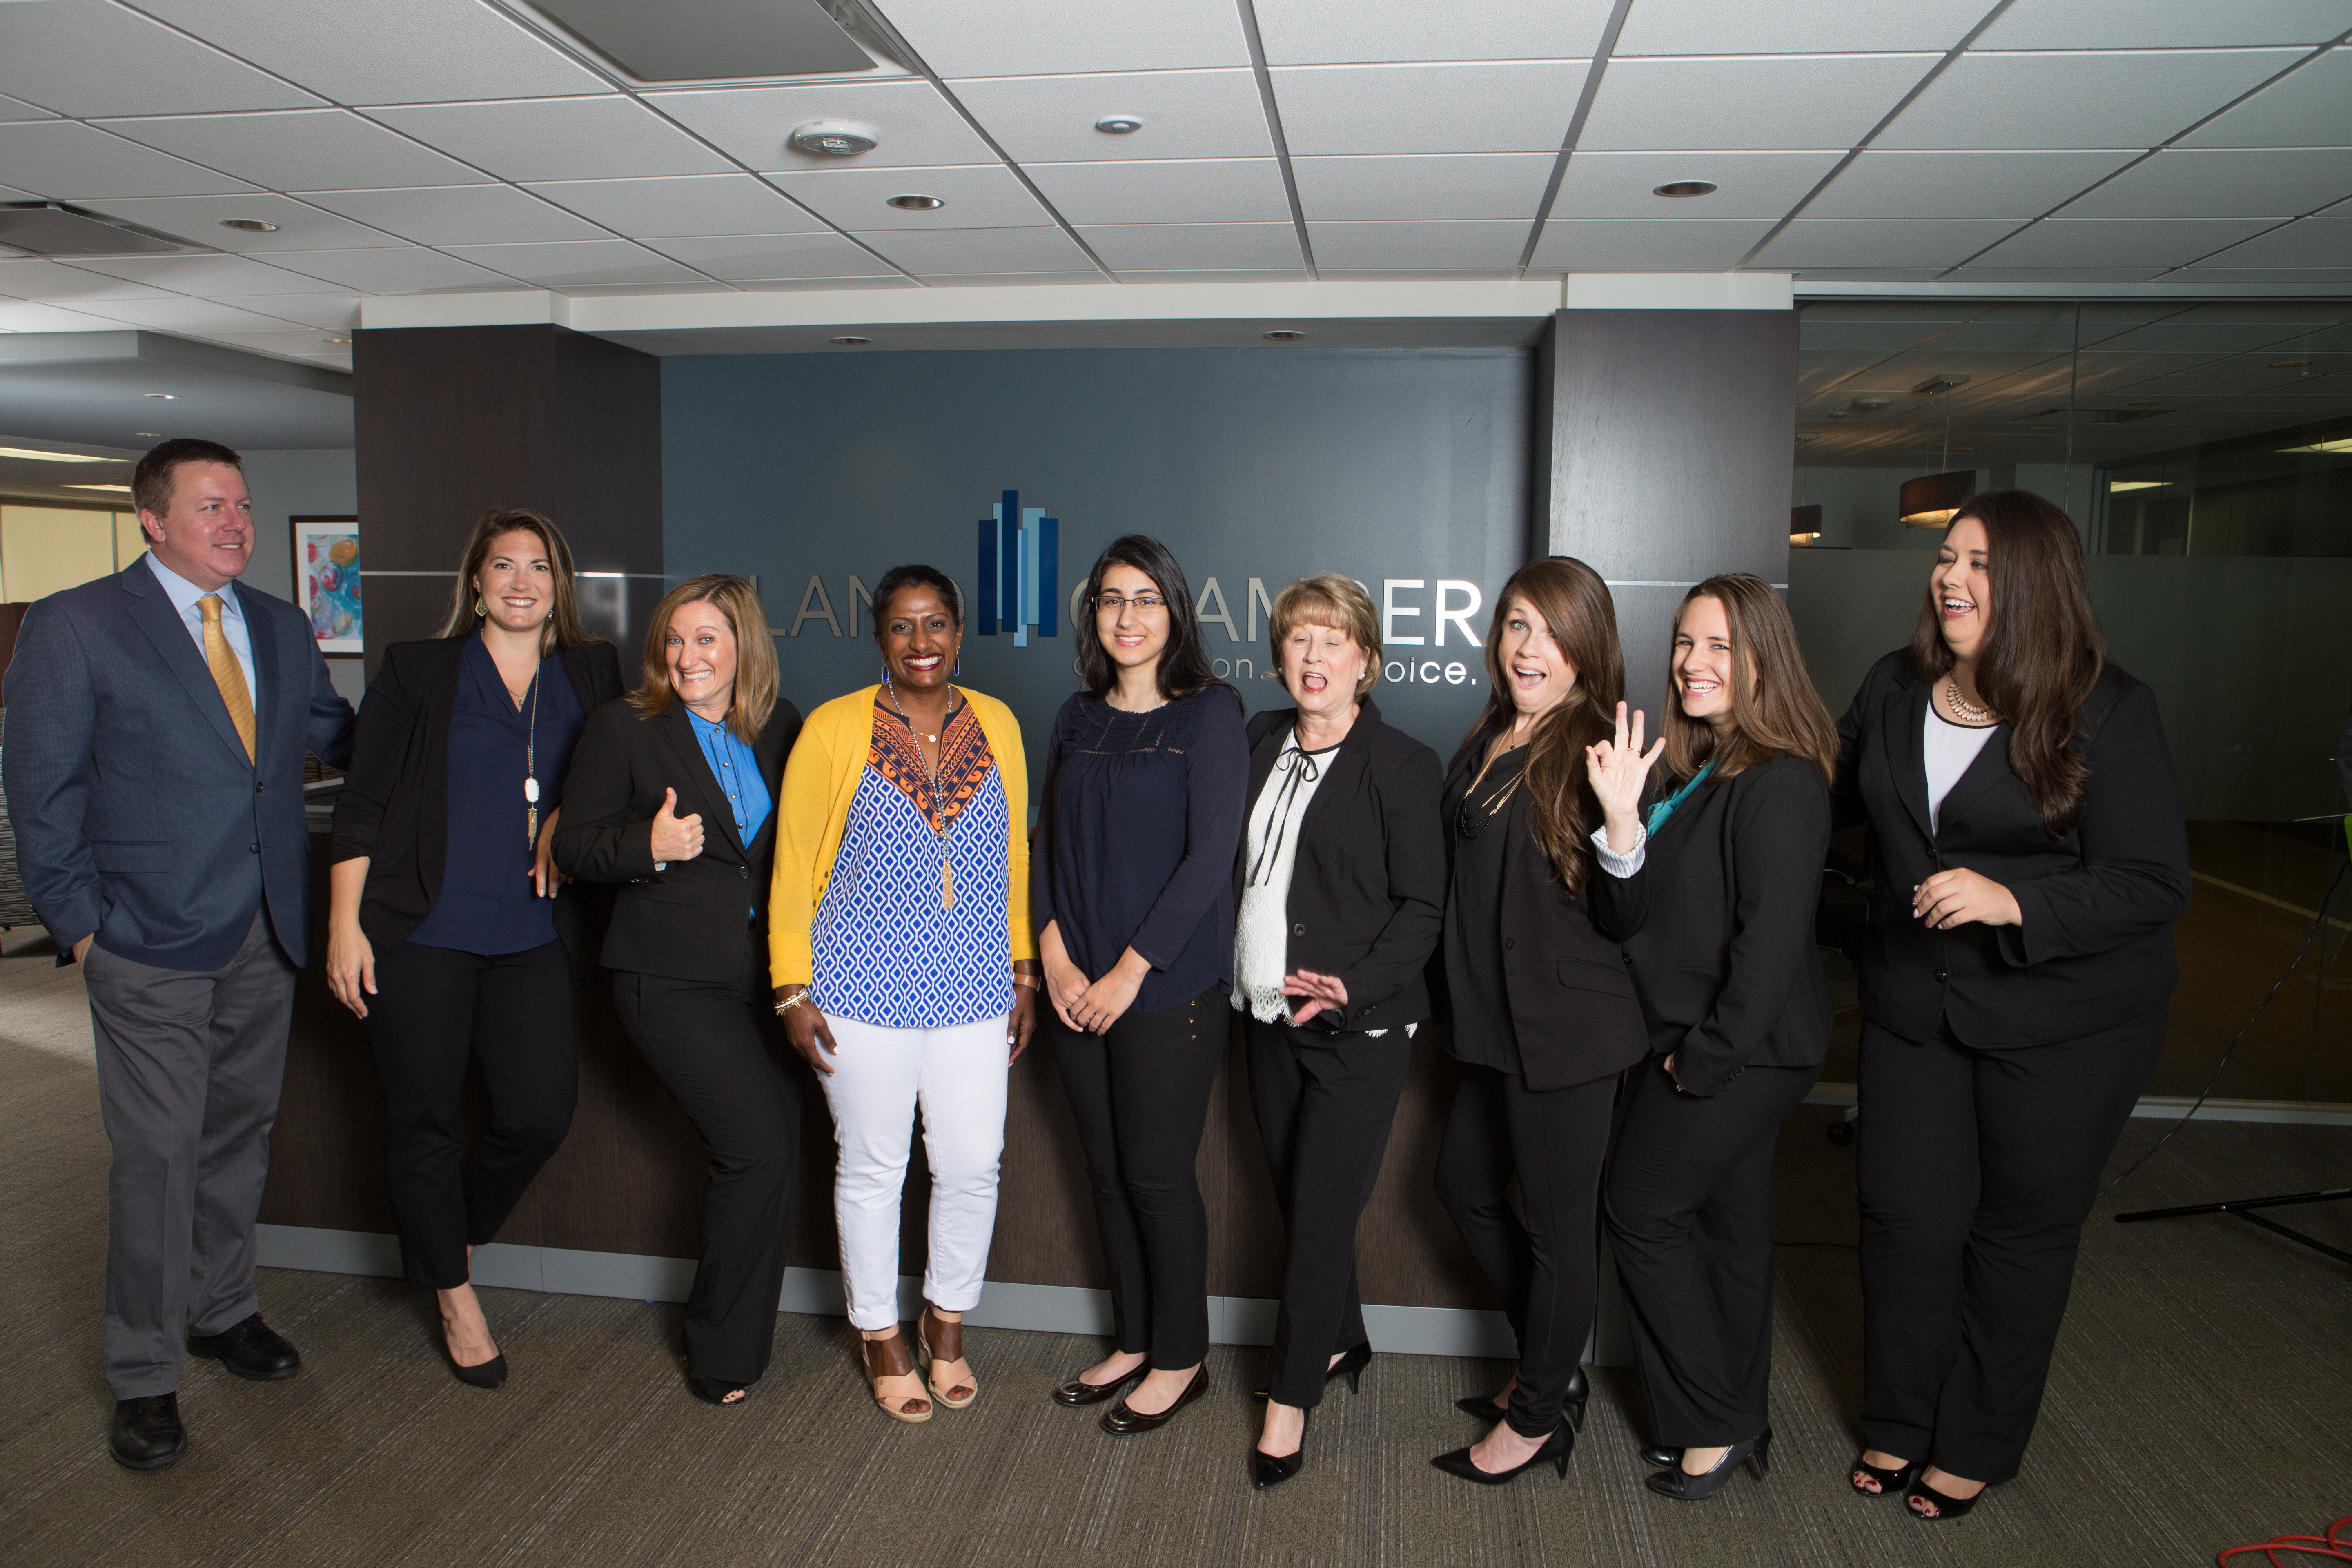 The Chamber Staff with Extern Alice Micheal and Intern Supriya Anand